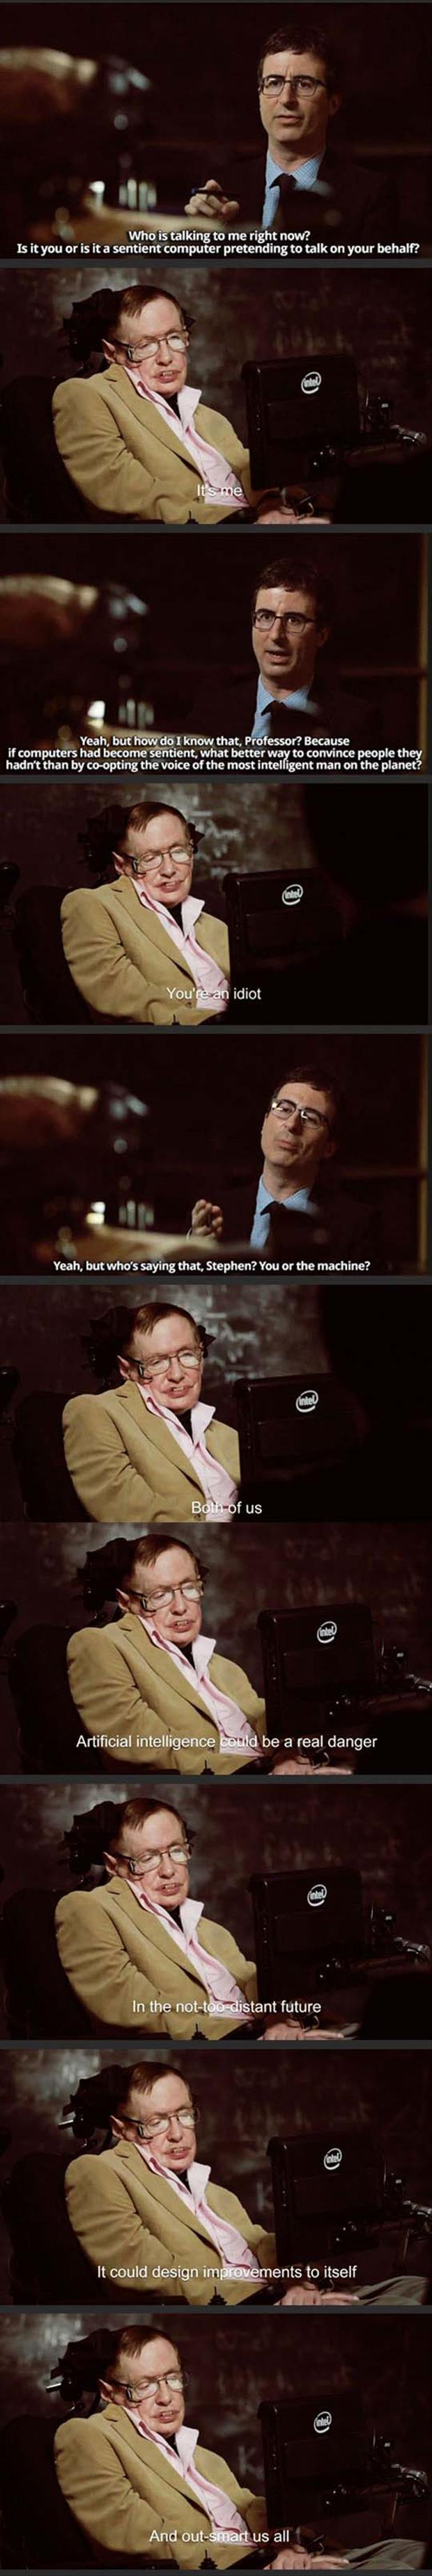 funny-Stephen-Hawking-John-Oliver-interview